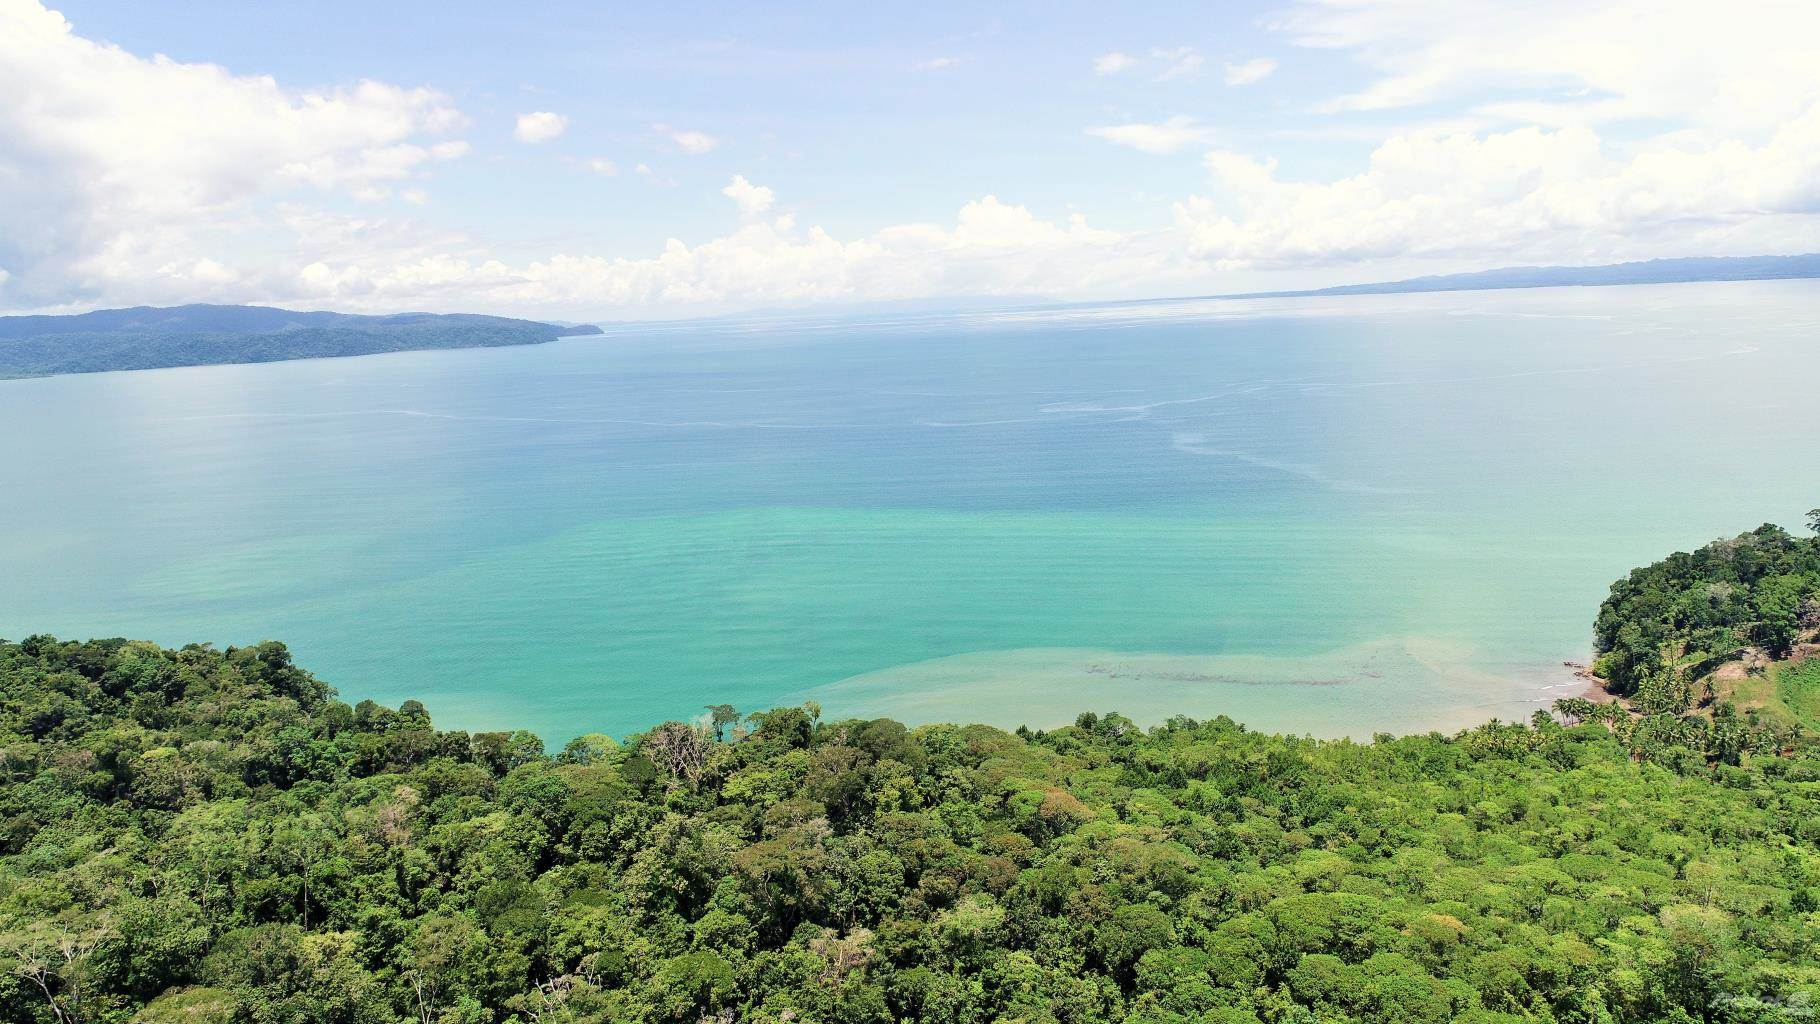 Farms & Ranches for sale in Dream Development Property Located in Piedras Blancas - 169 Acres, Osa, Puntarenas ,60504  , Costa Rica